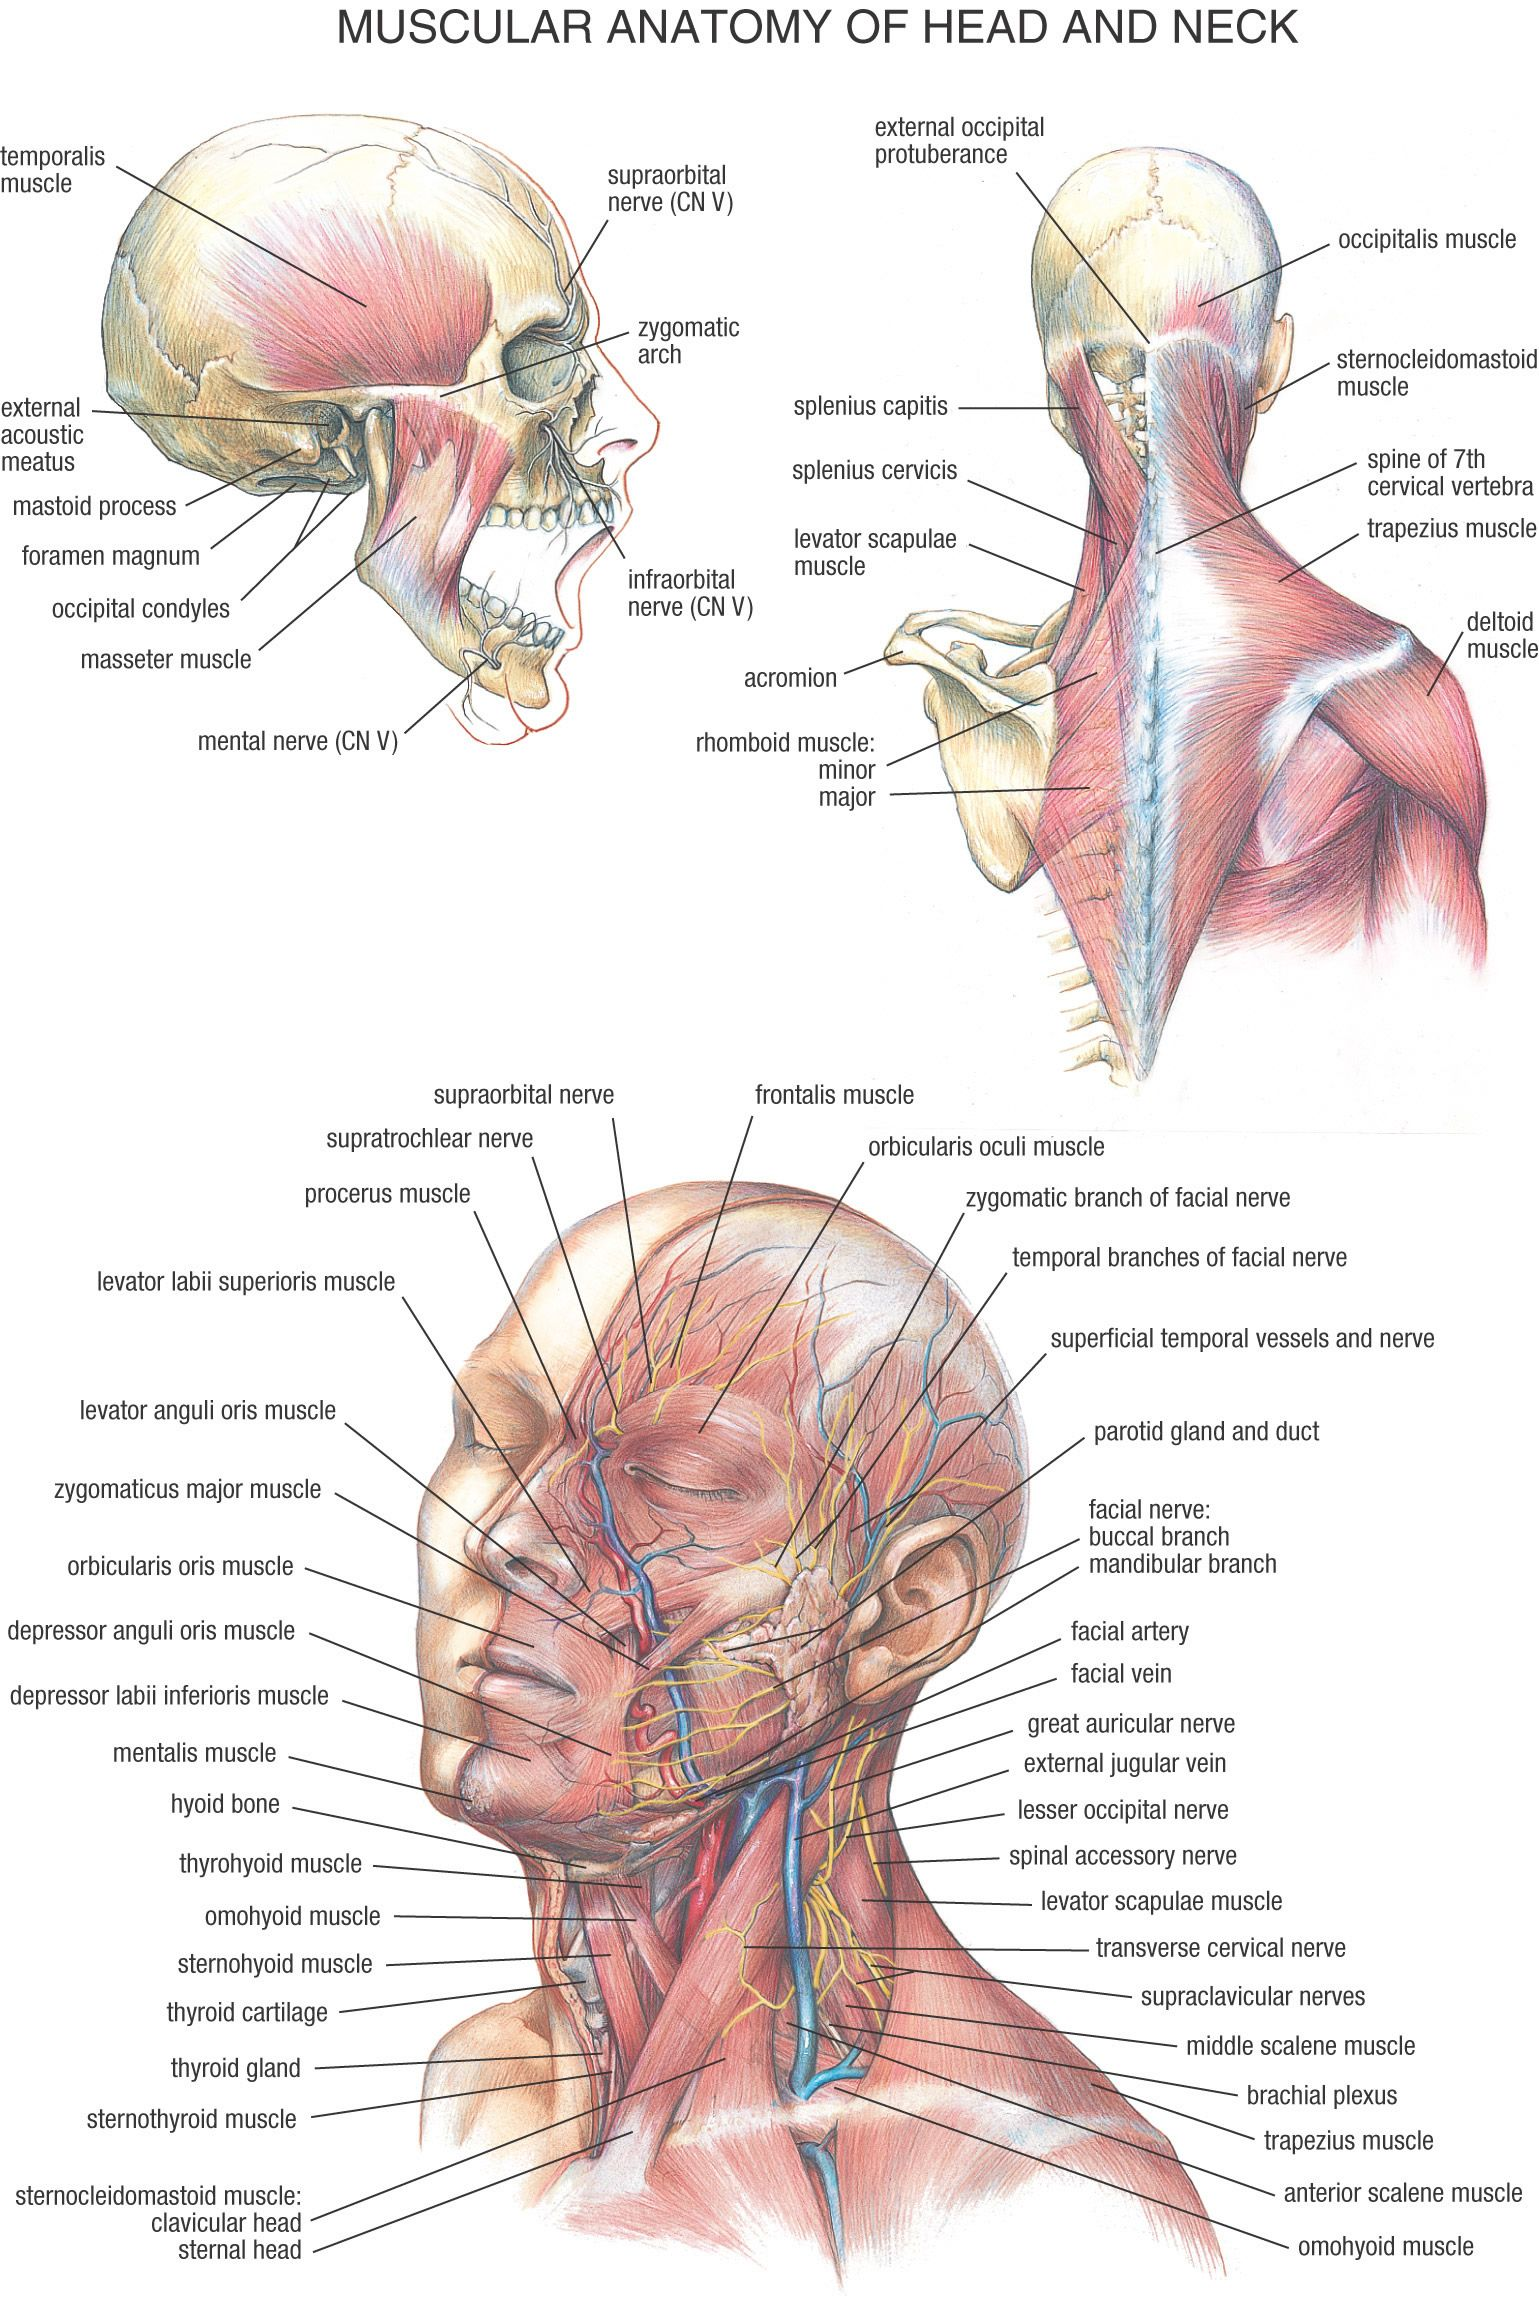 Human Anatomy Ken To Fude No Ryu Kenshu Kai Karate Soke Solly Full Body Muscle Diagram Muscles Labeled Said